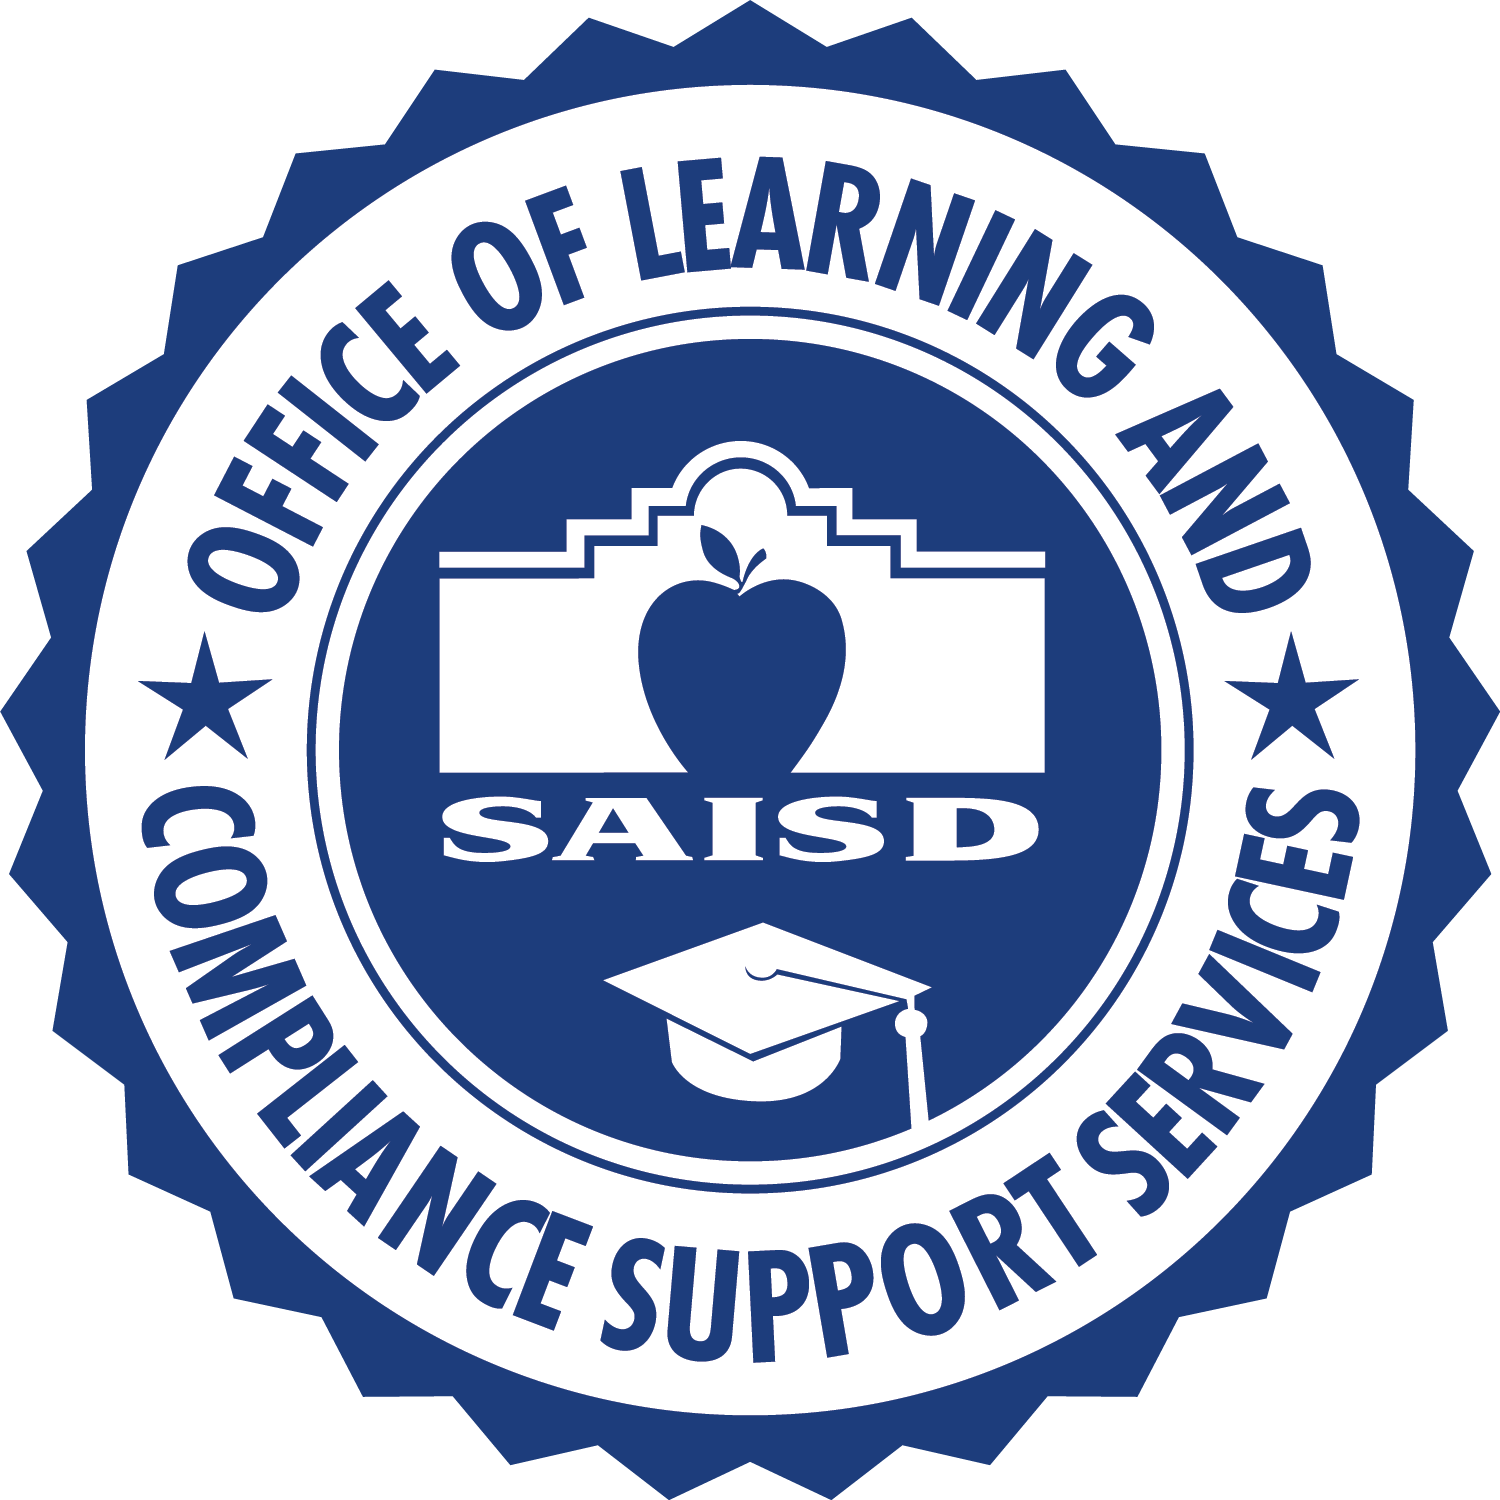 Office of Learning and Compliance Support Services logo